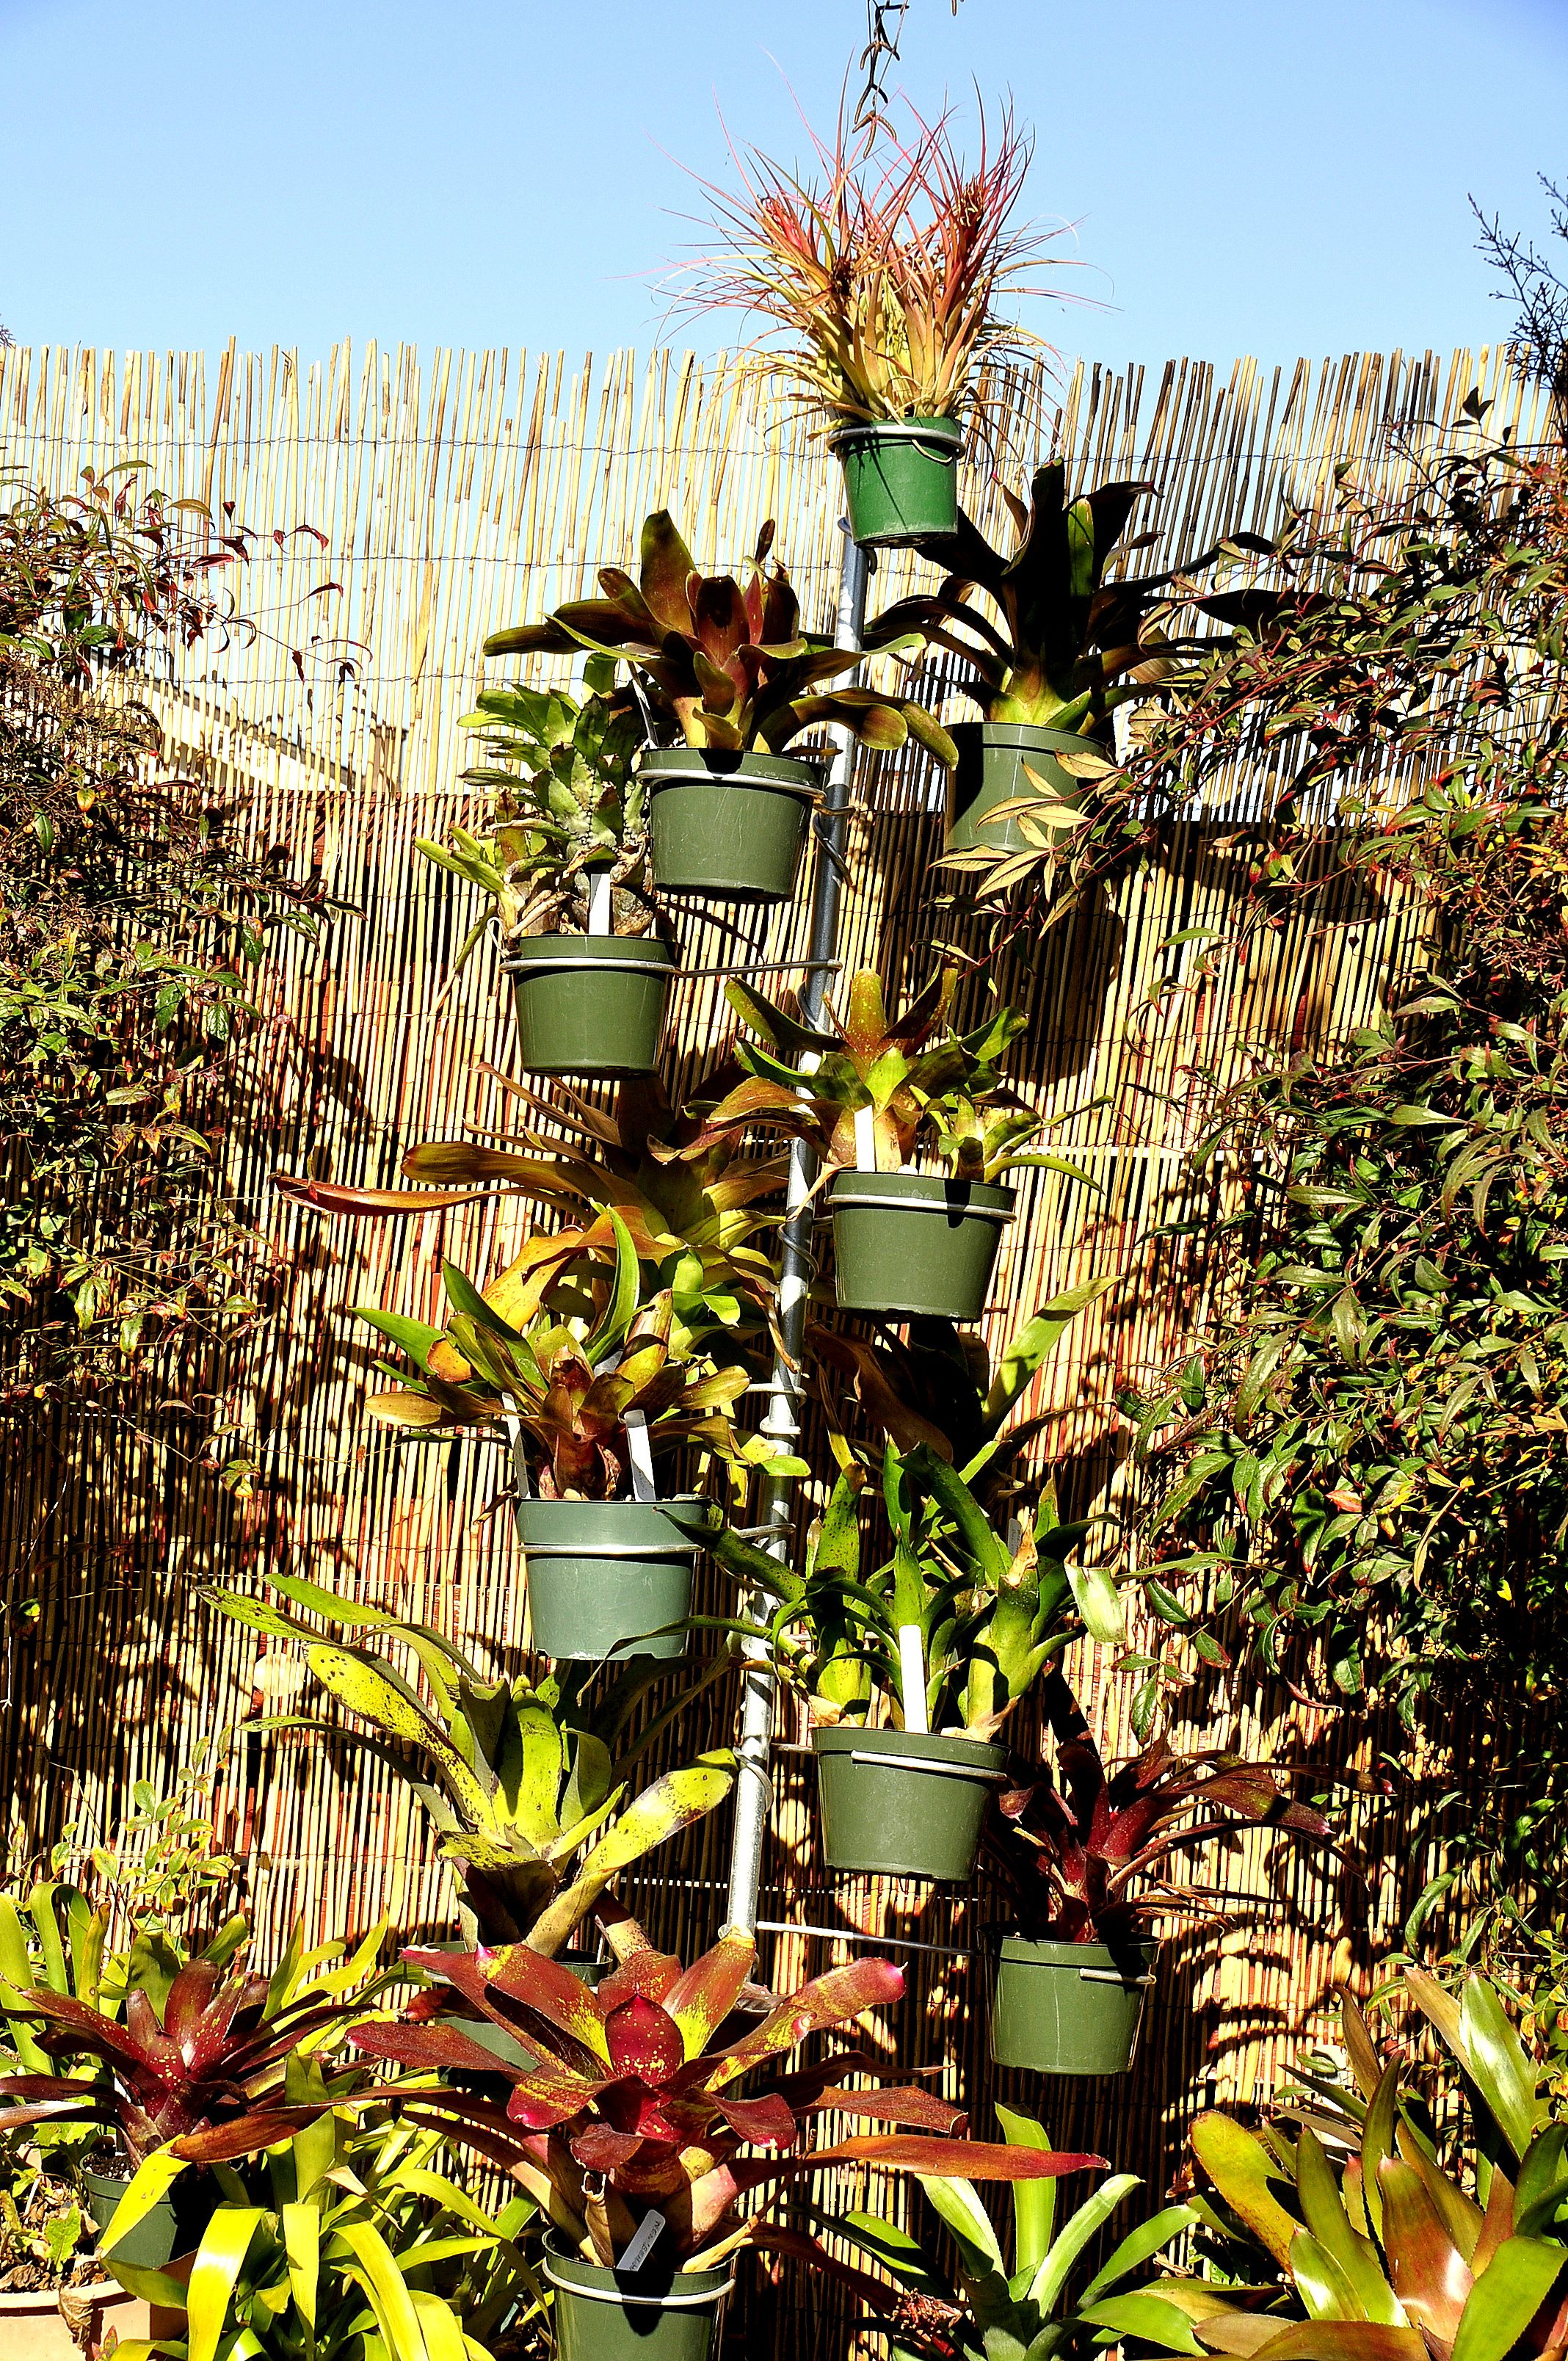 Check Out How To Make Your Back Yard Look More Tropical Using The Stand Alone Pole